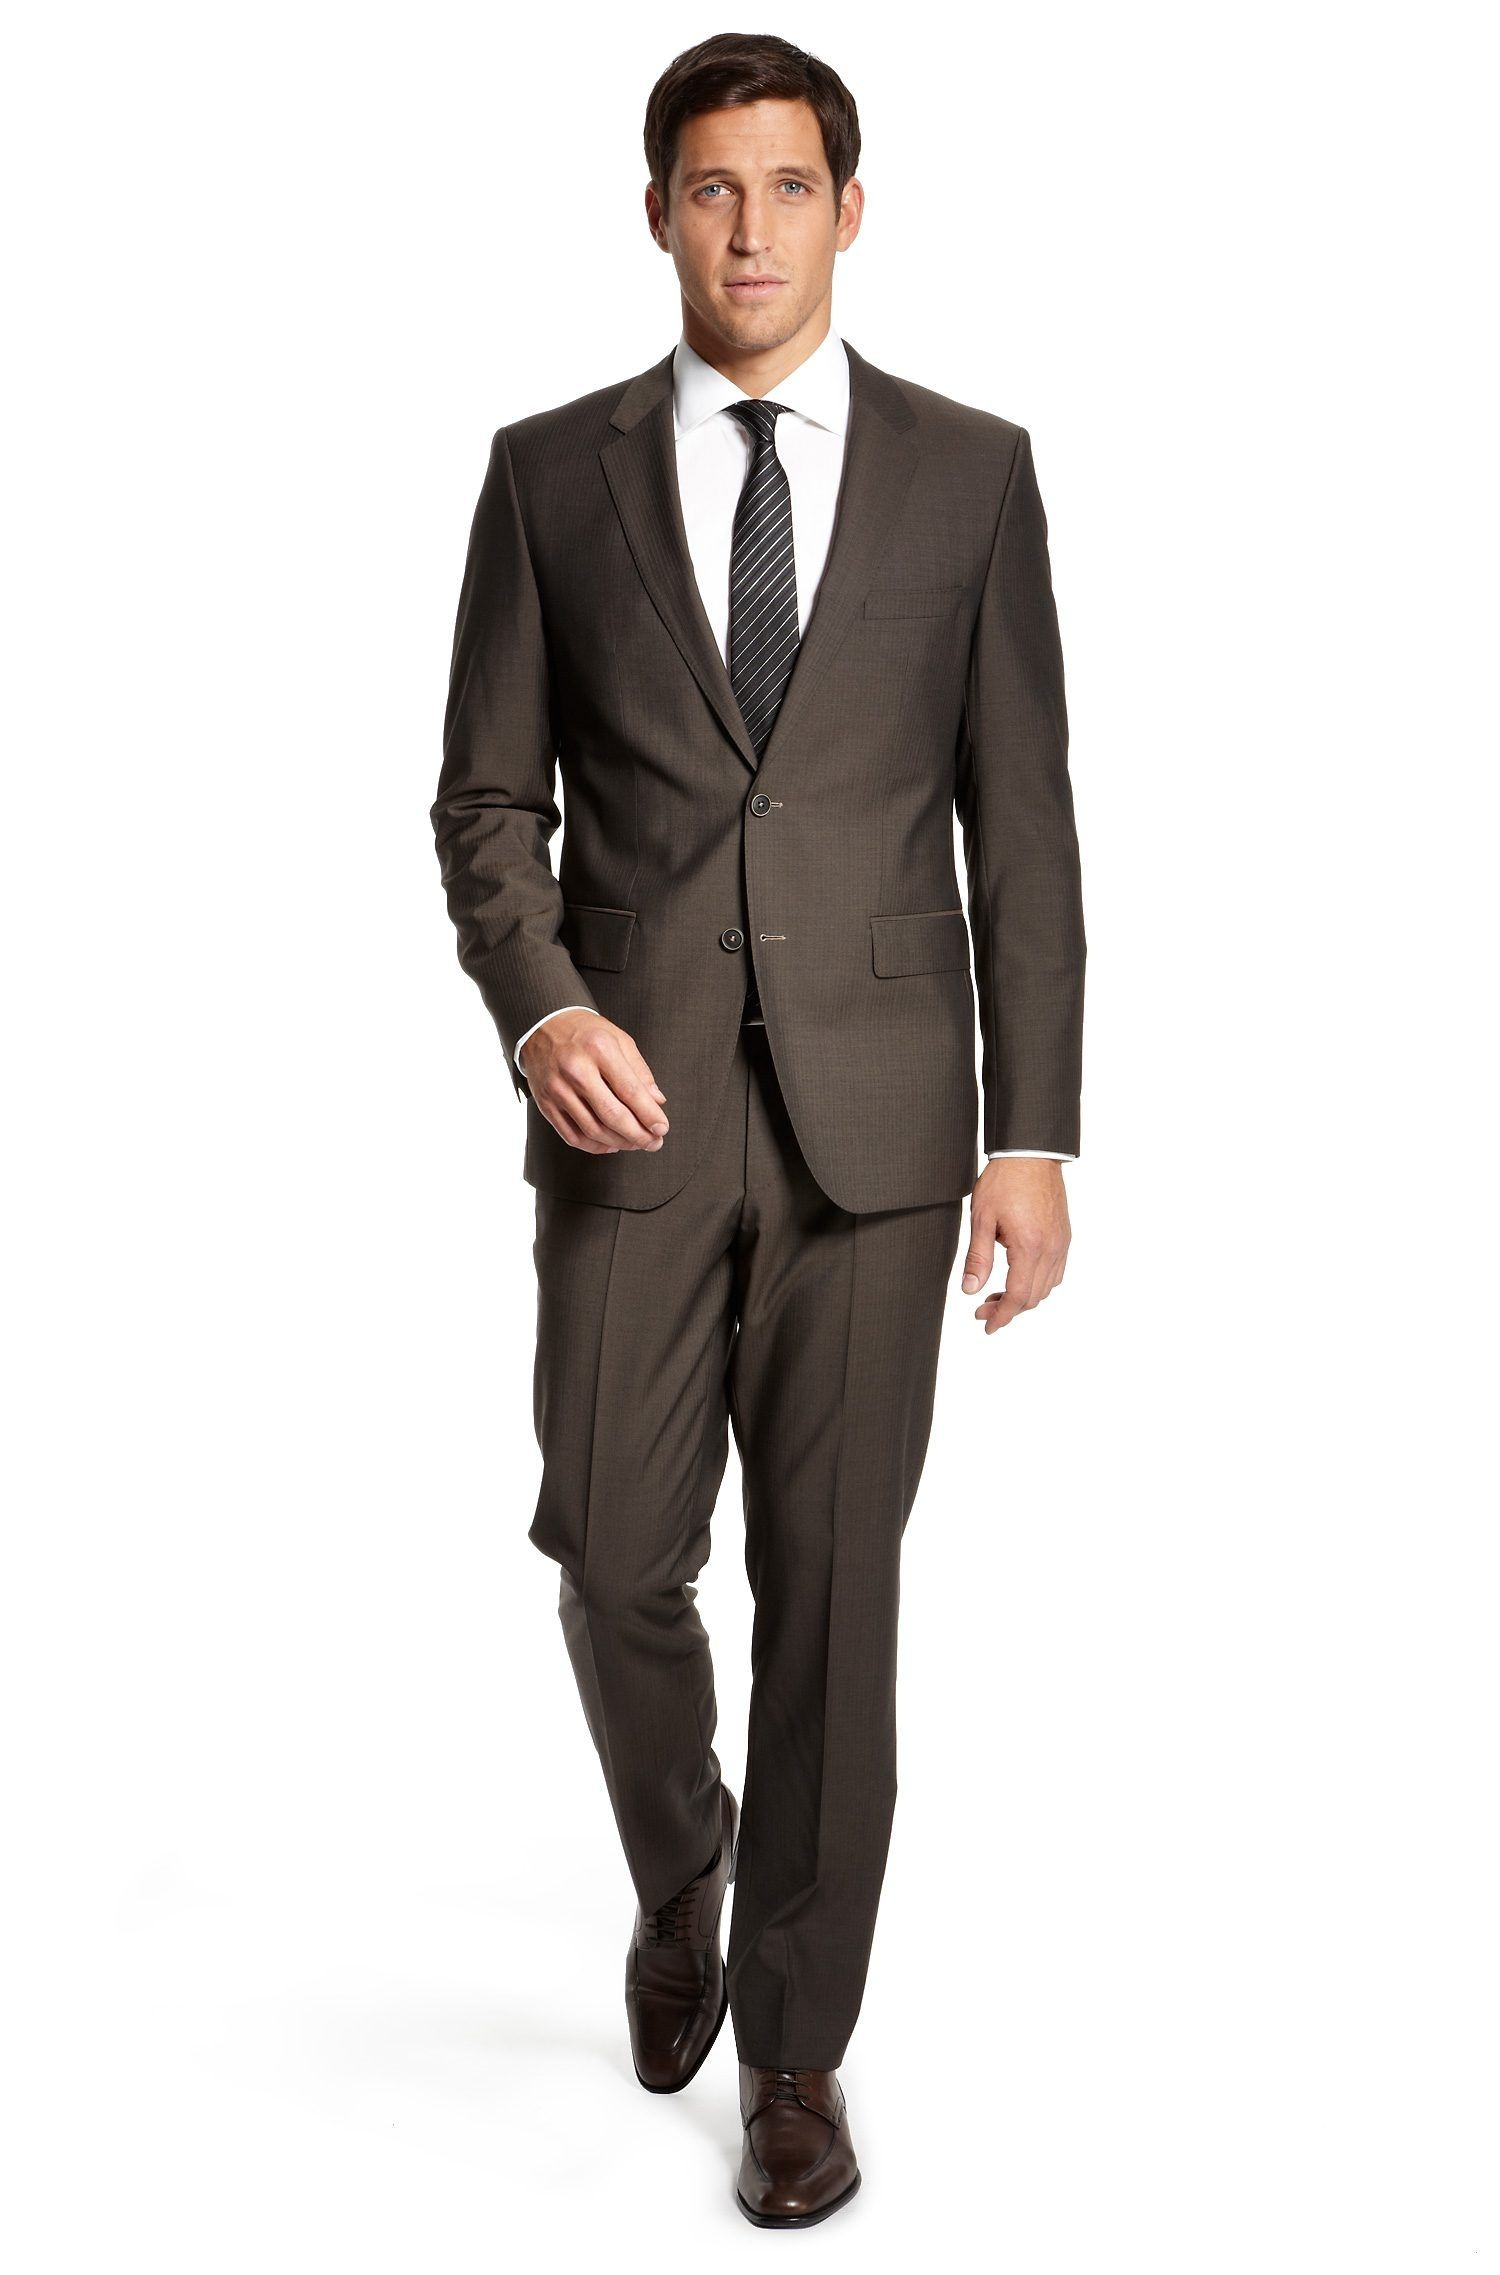 The Brown Suit: Less common, but certainly stylish. Probably not ...